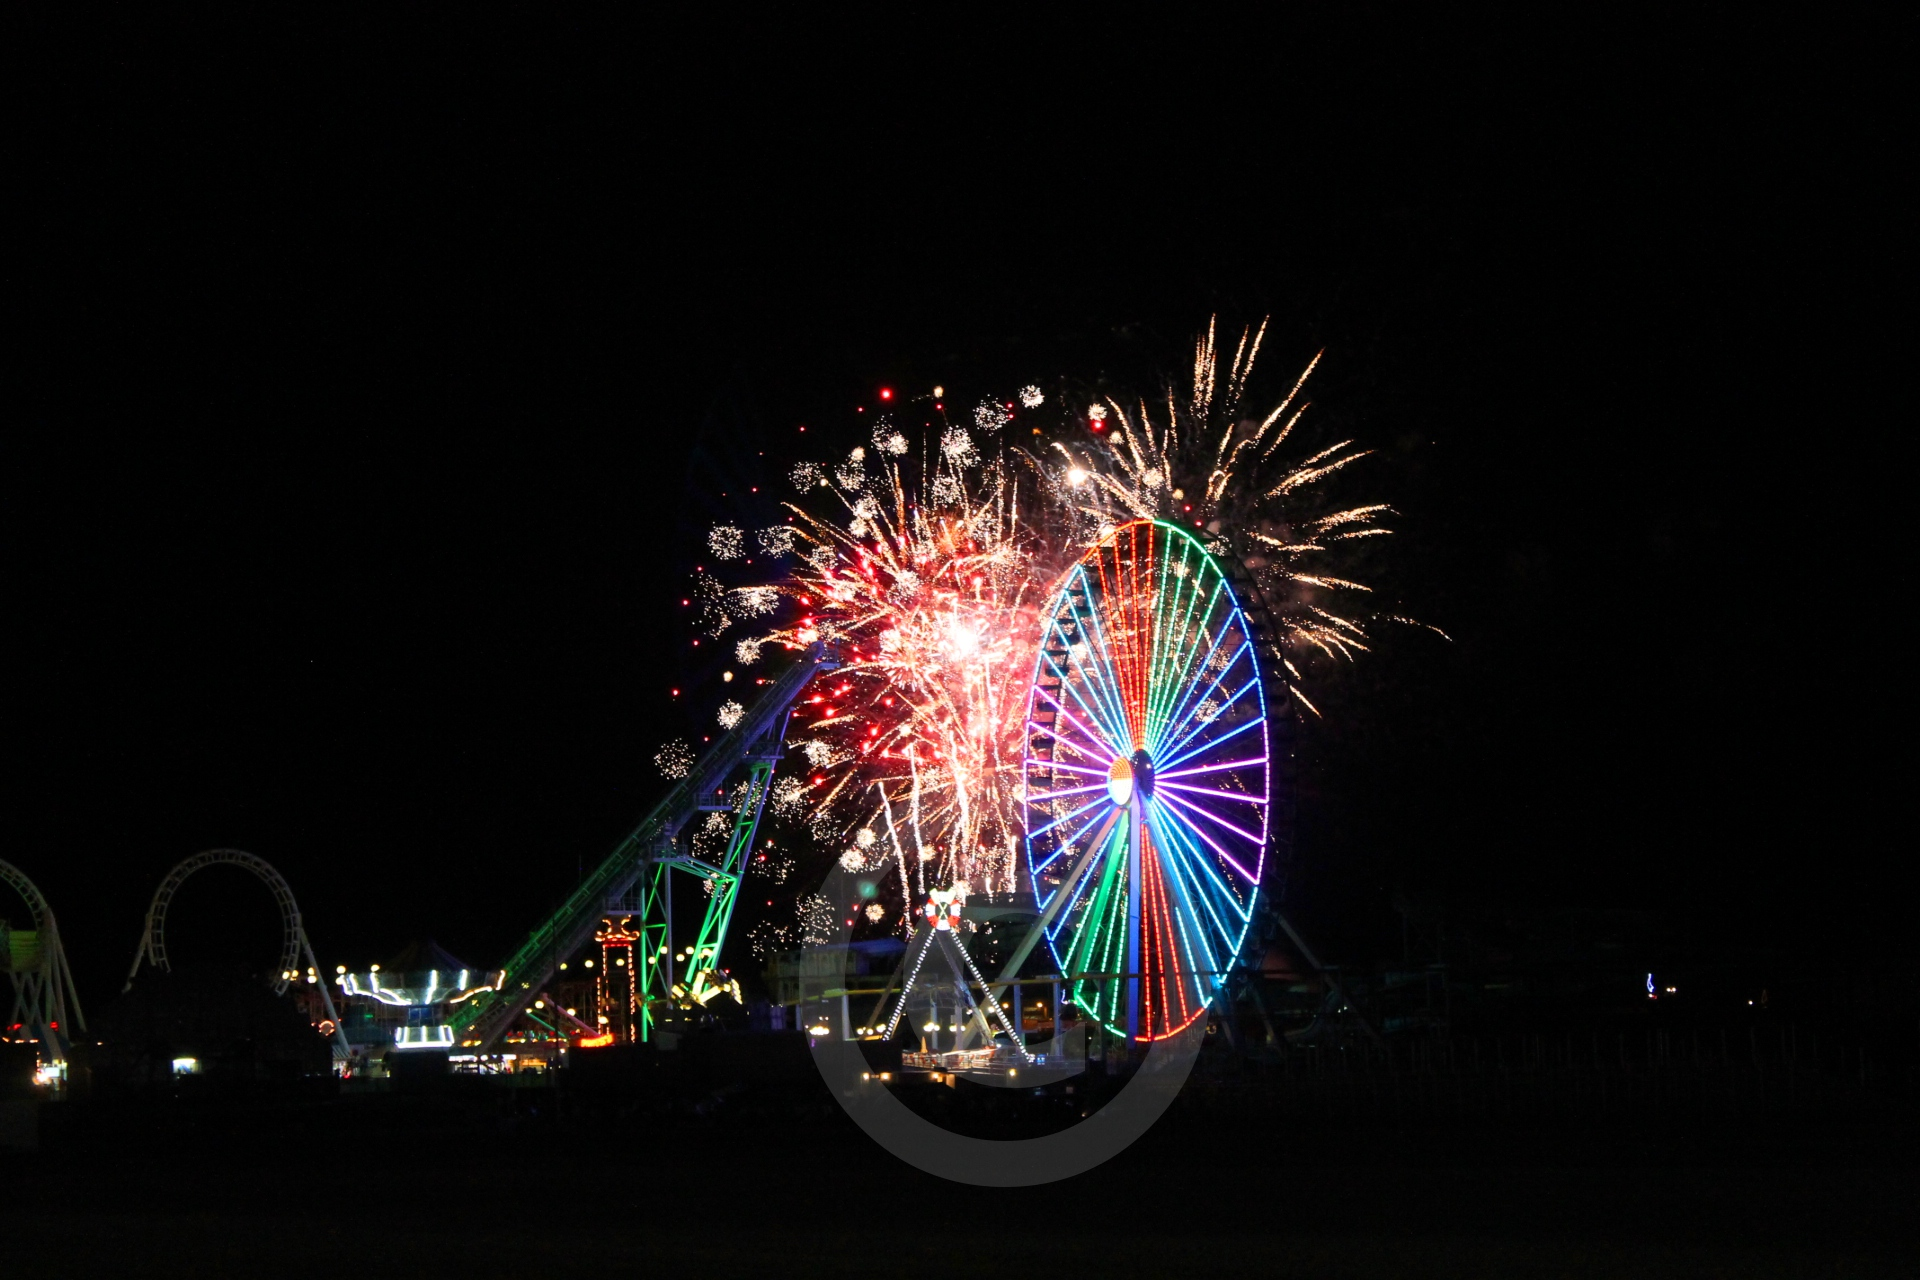 ferris wheel fireworks originalcr